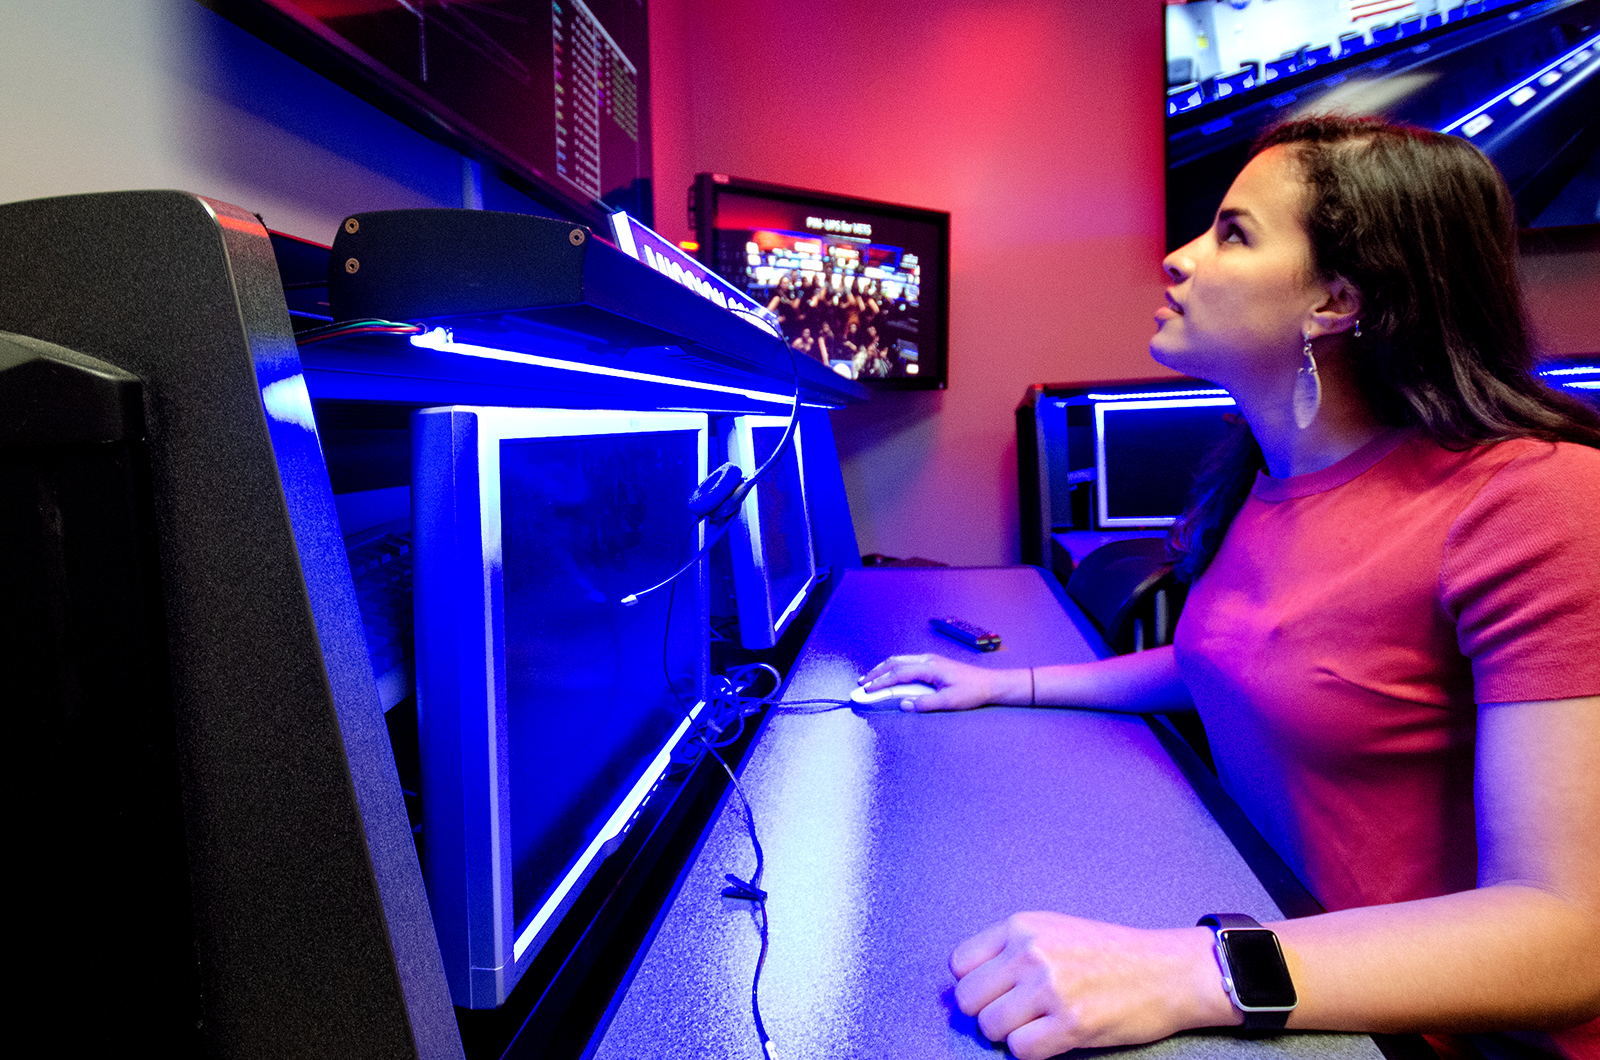 Santini De Leon sits in the Space Flight Operations center at JPL in a room with red and blue lighting and looks up at a screen showing live spacecraft communications.